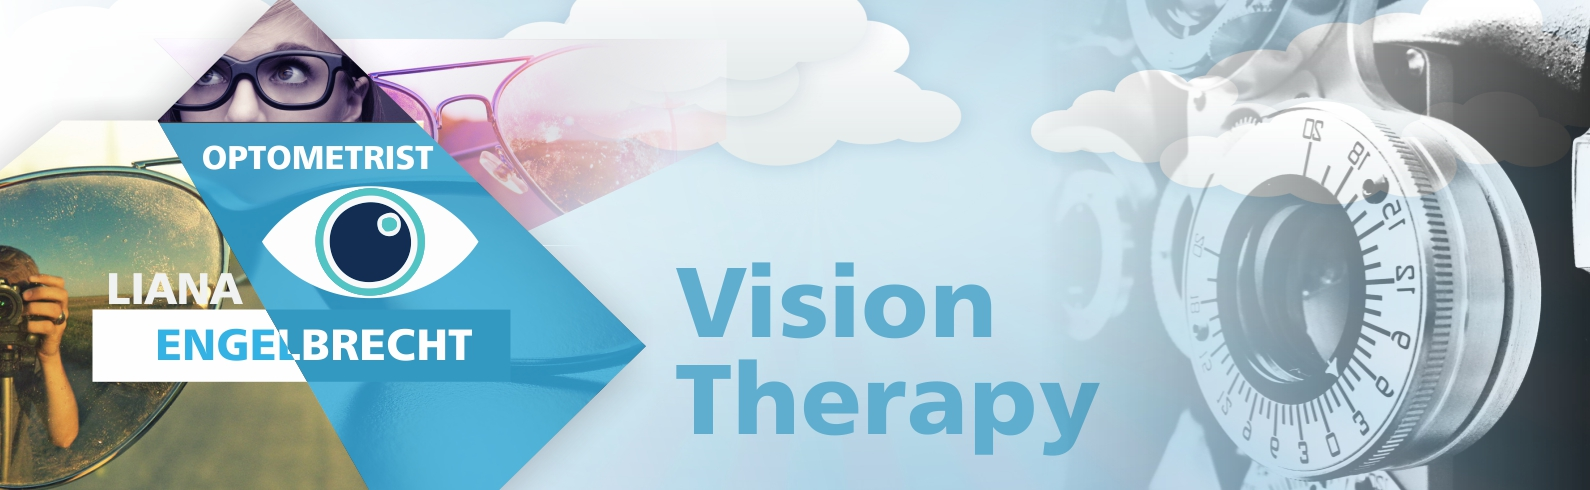 Liana Website Banner Vision Therapy